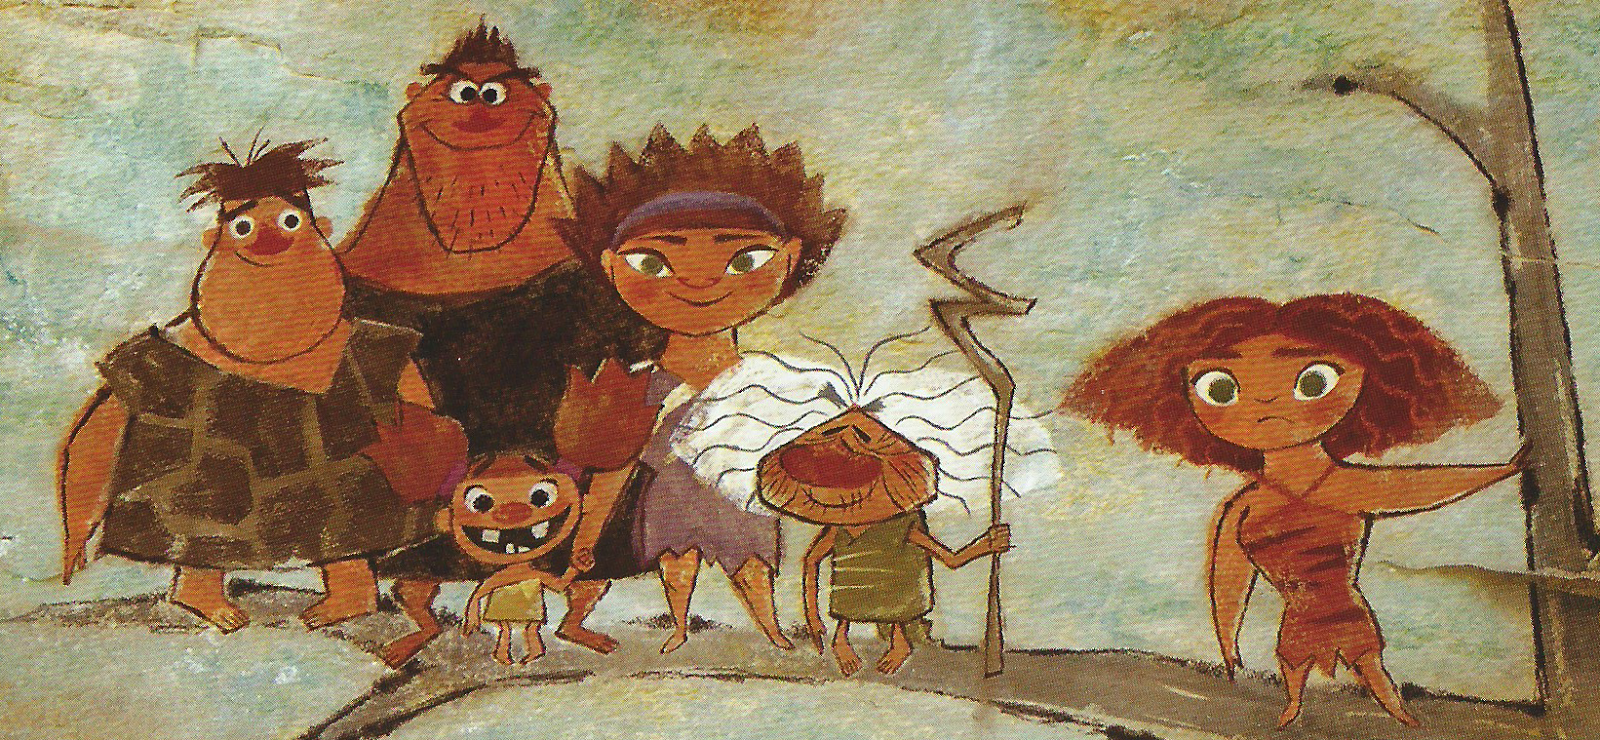 Image - Moshier Wuller.png | The Croods Wiki | FANDOM ... | 1600 x 740 png 2723kB